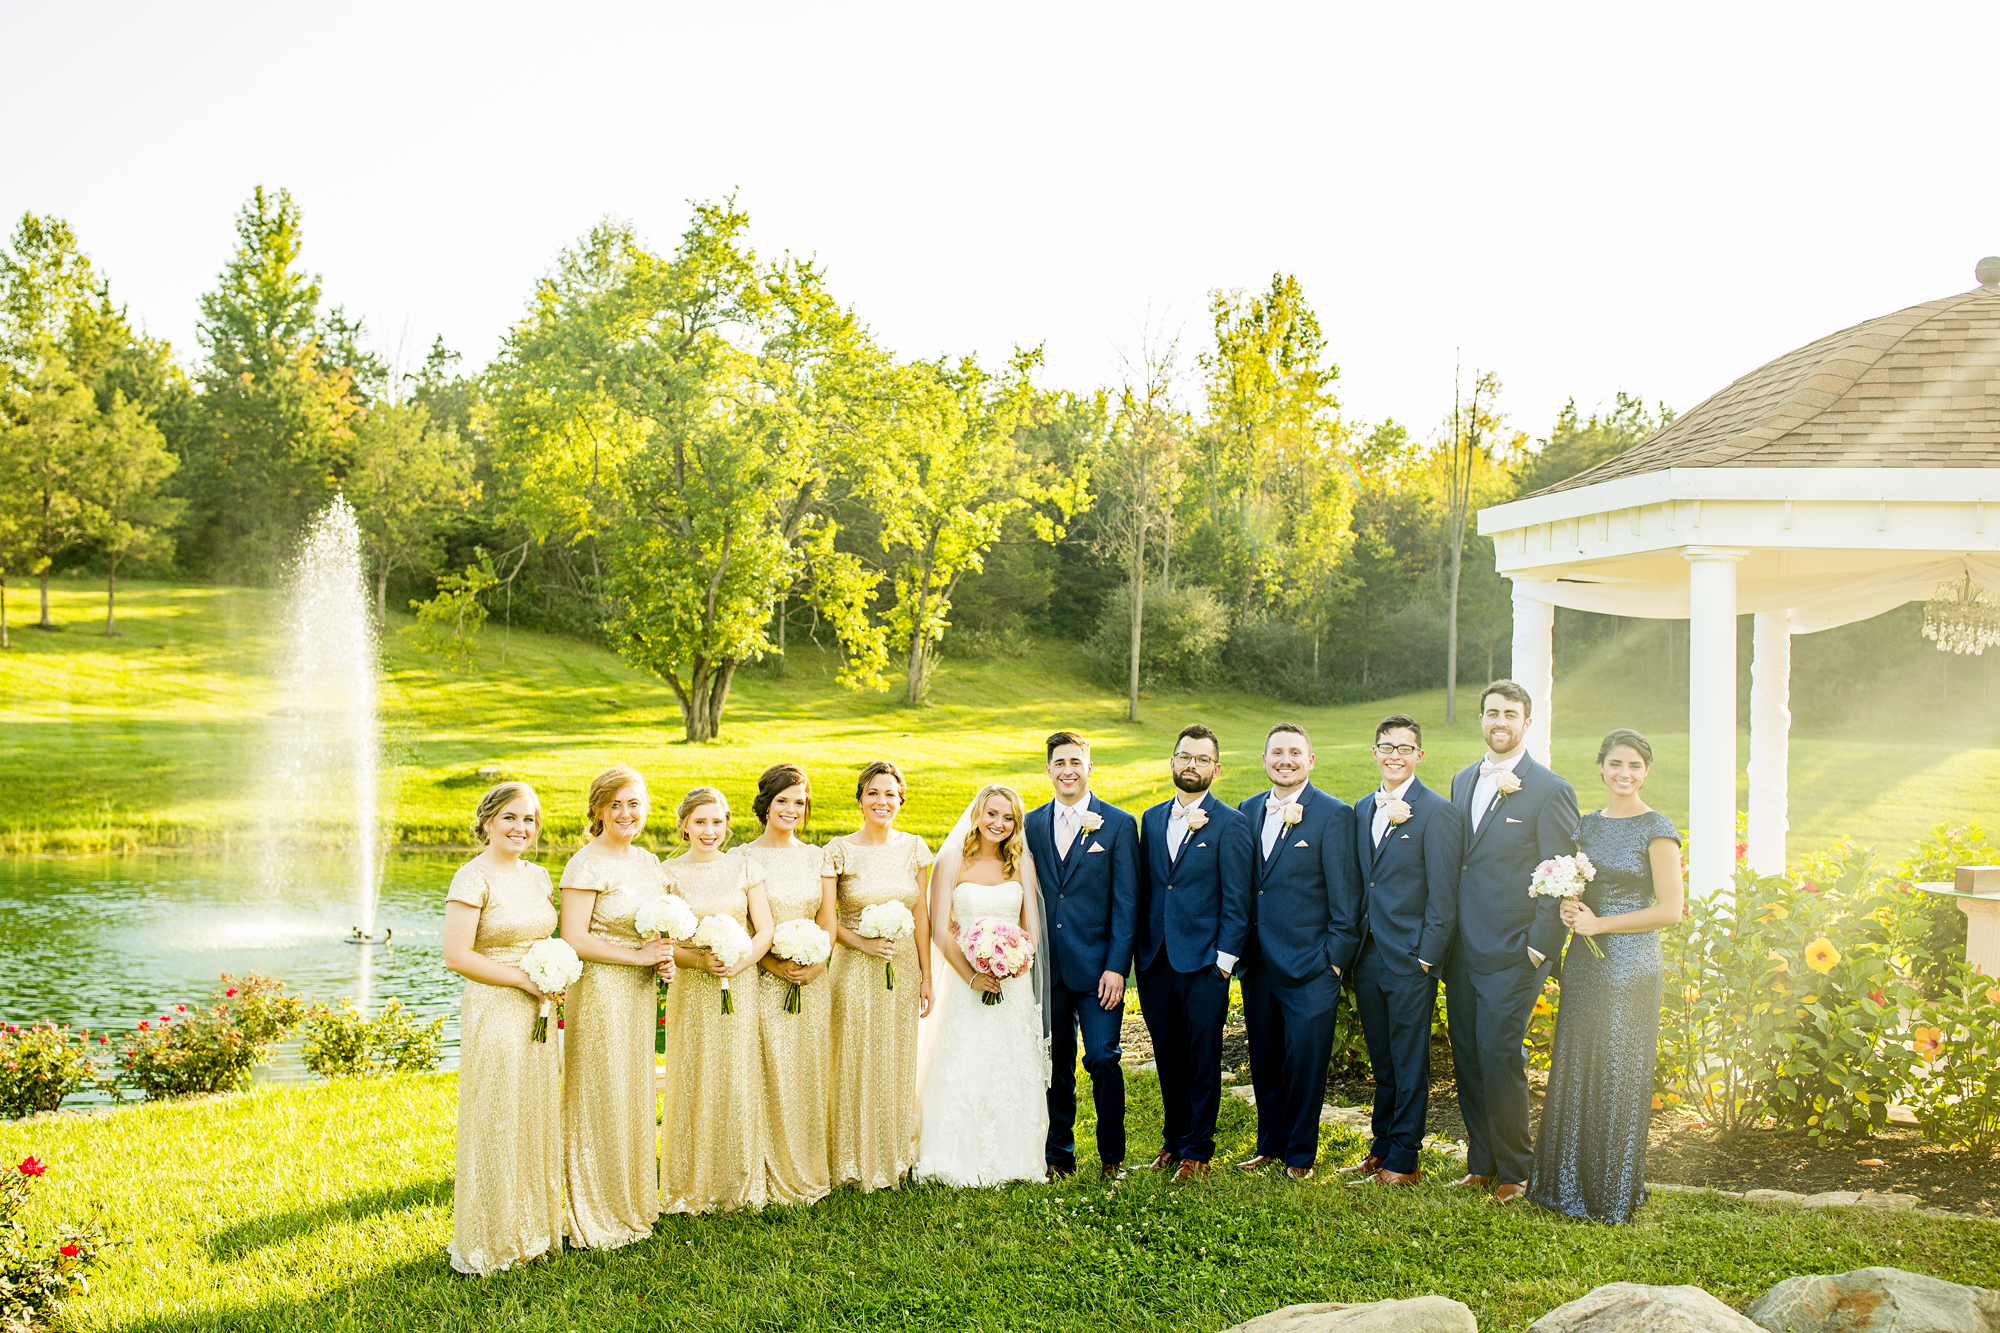 Seriously_Sabrina_Photography_Dayton_Ohio_Great_Gatsby_Wedding_Cedar_Springs_Pavillion_Harper_68.jpg